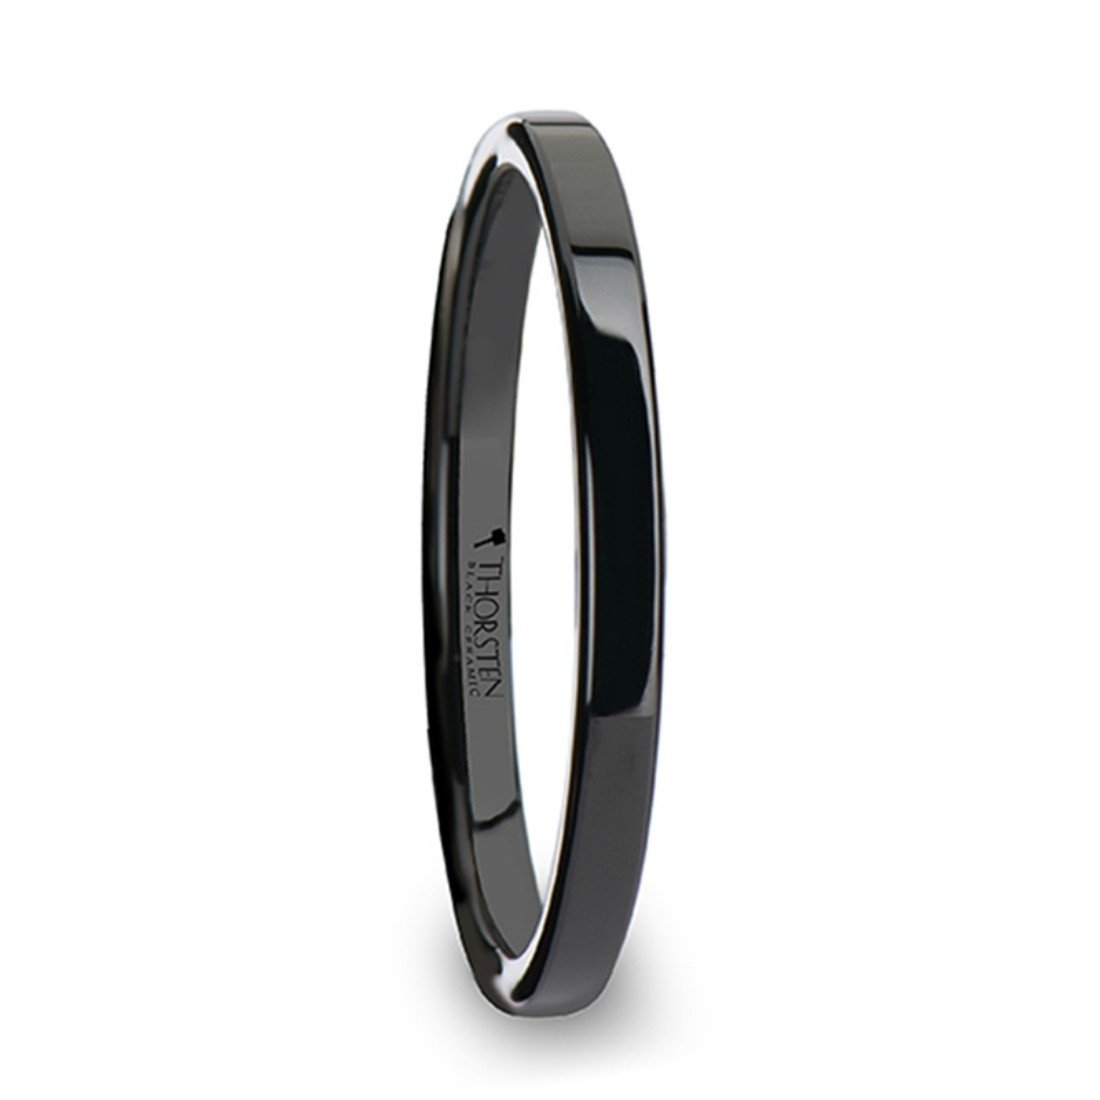 Thorsten Faith Black Flat Shaped Ceramic Wedding Ring for Her 2 mm Wide Wedding Band from Roy Rose Jewelry